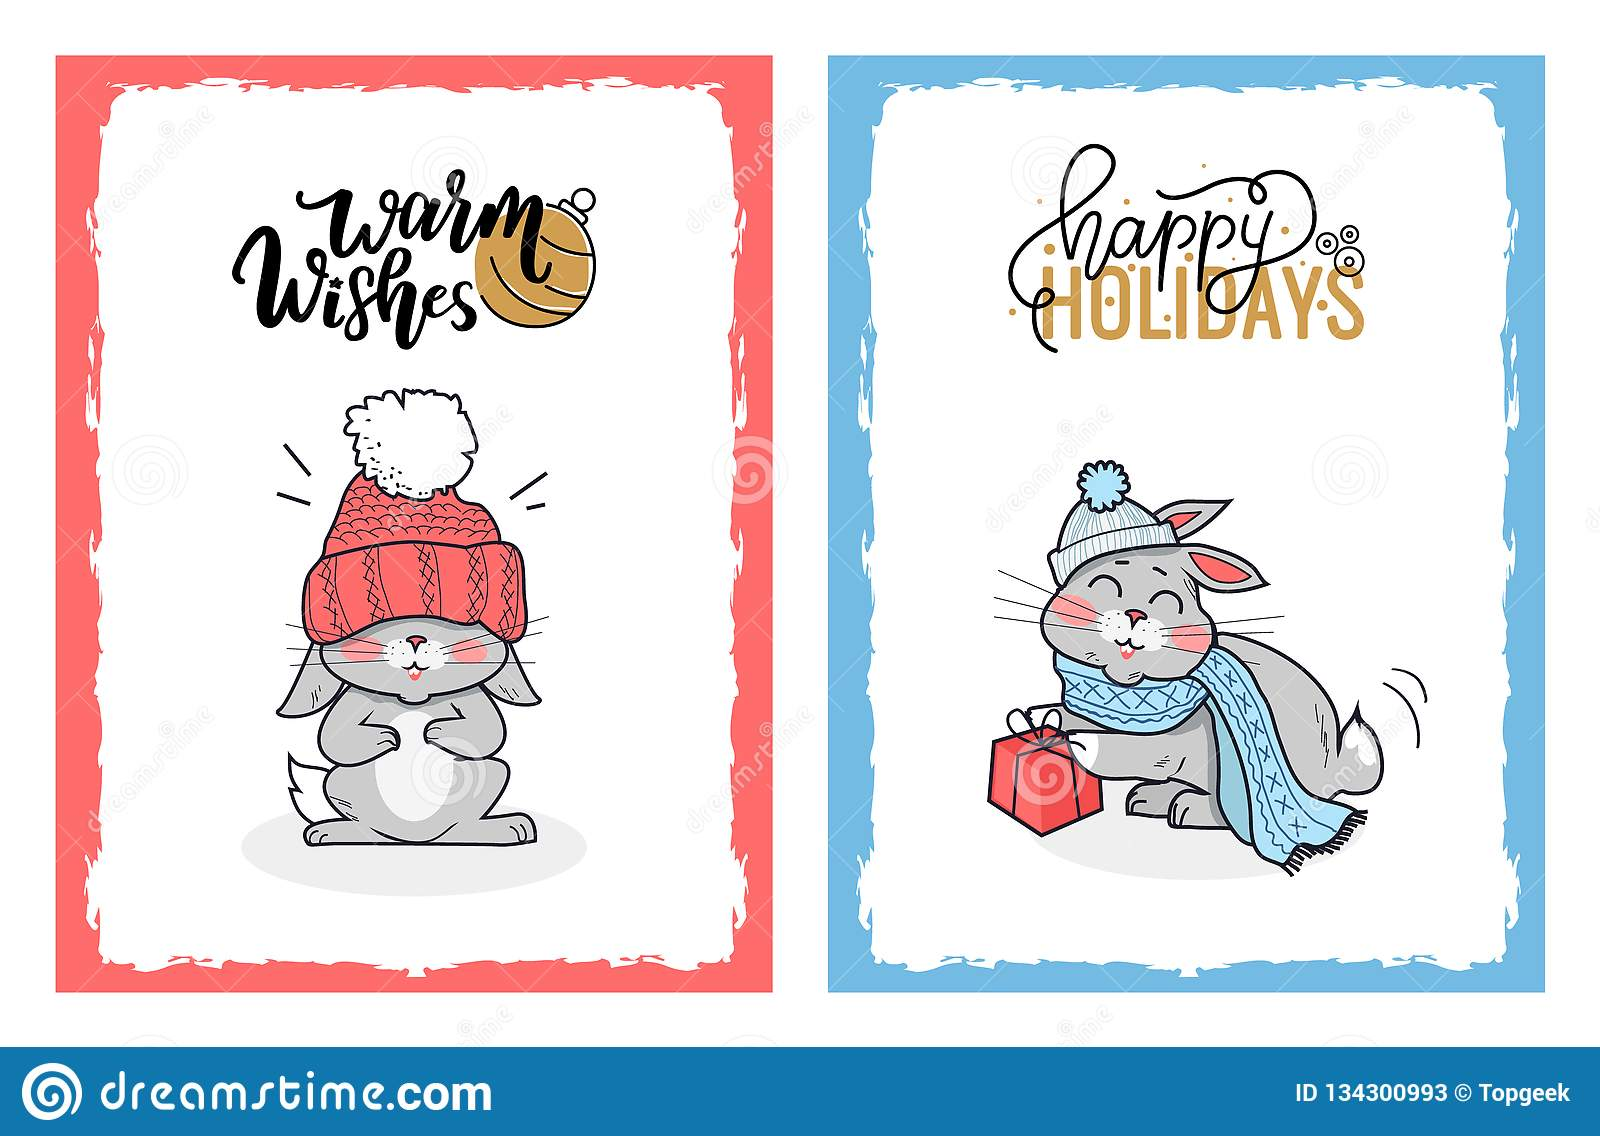 hight resolution of clipart of lovely rabbits on christmas cards